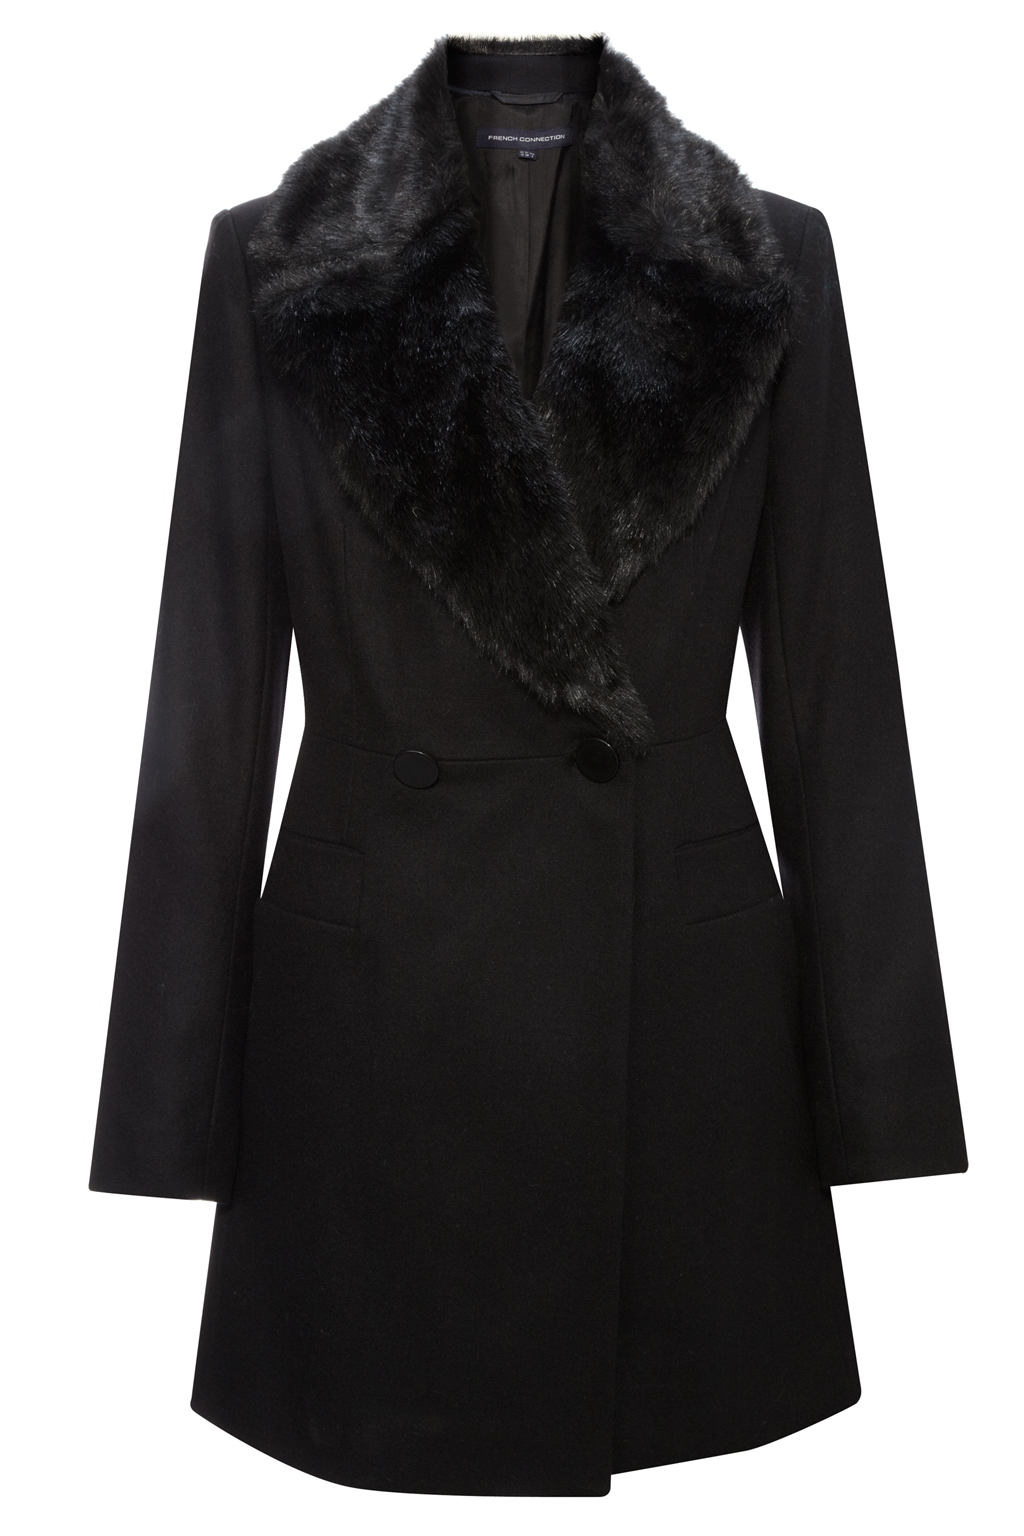 New-French-Connection-Wool-Fur-Collar-Coat-Black